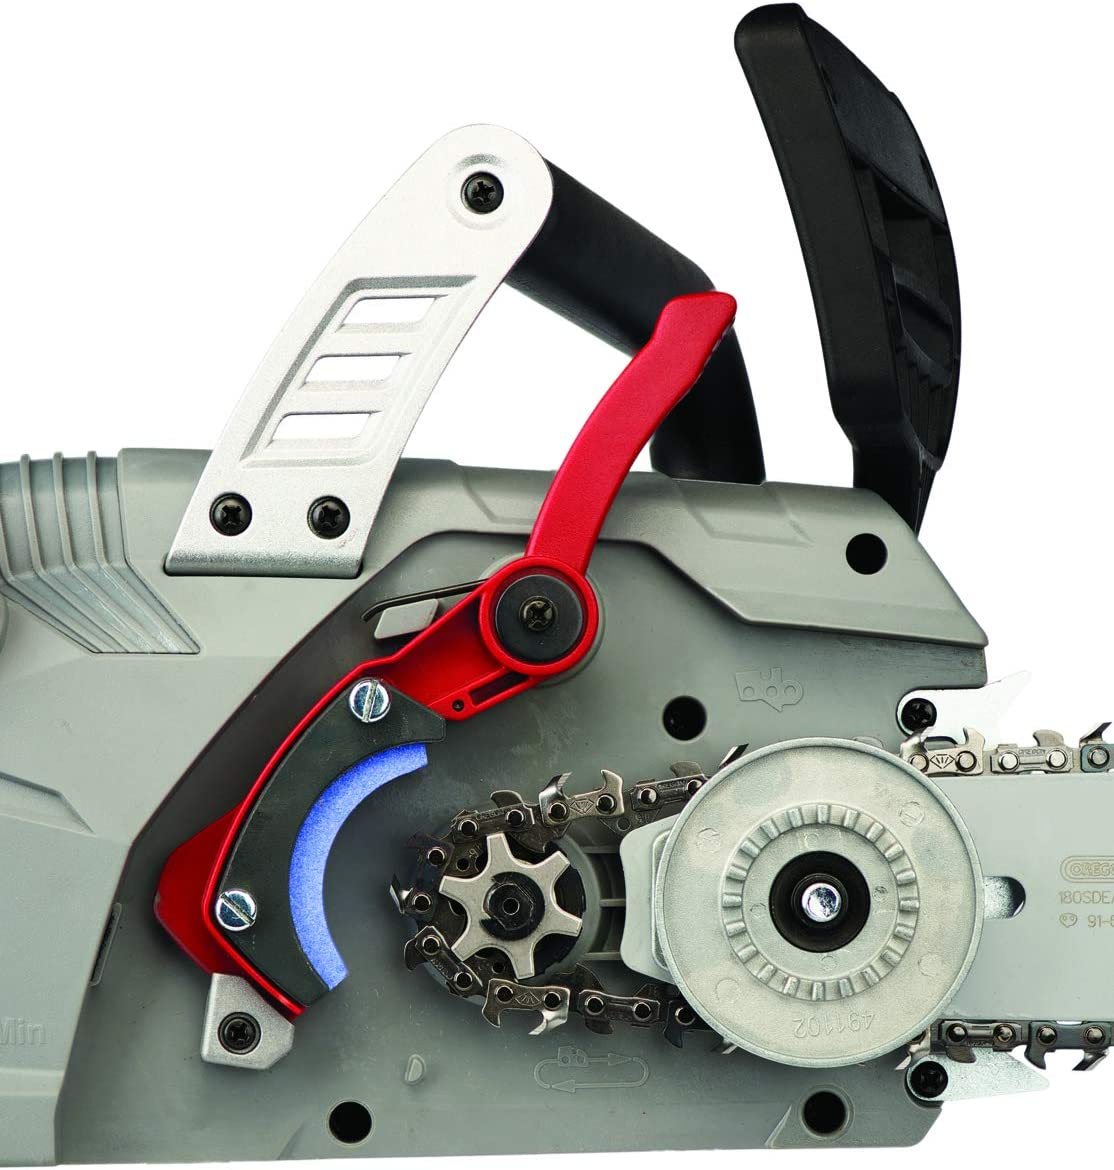 Oregon CS1500 Chainsaws product image 4